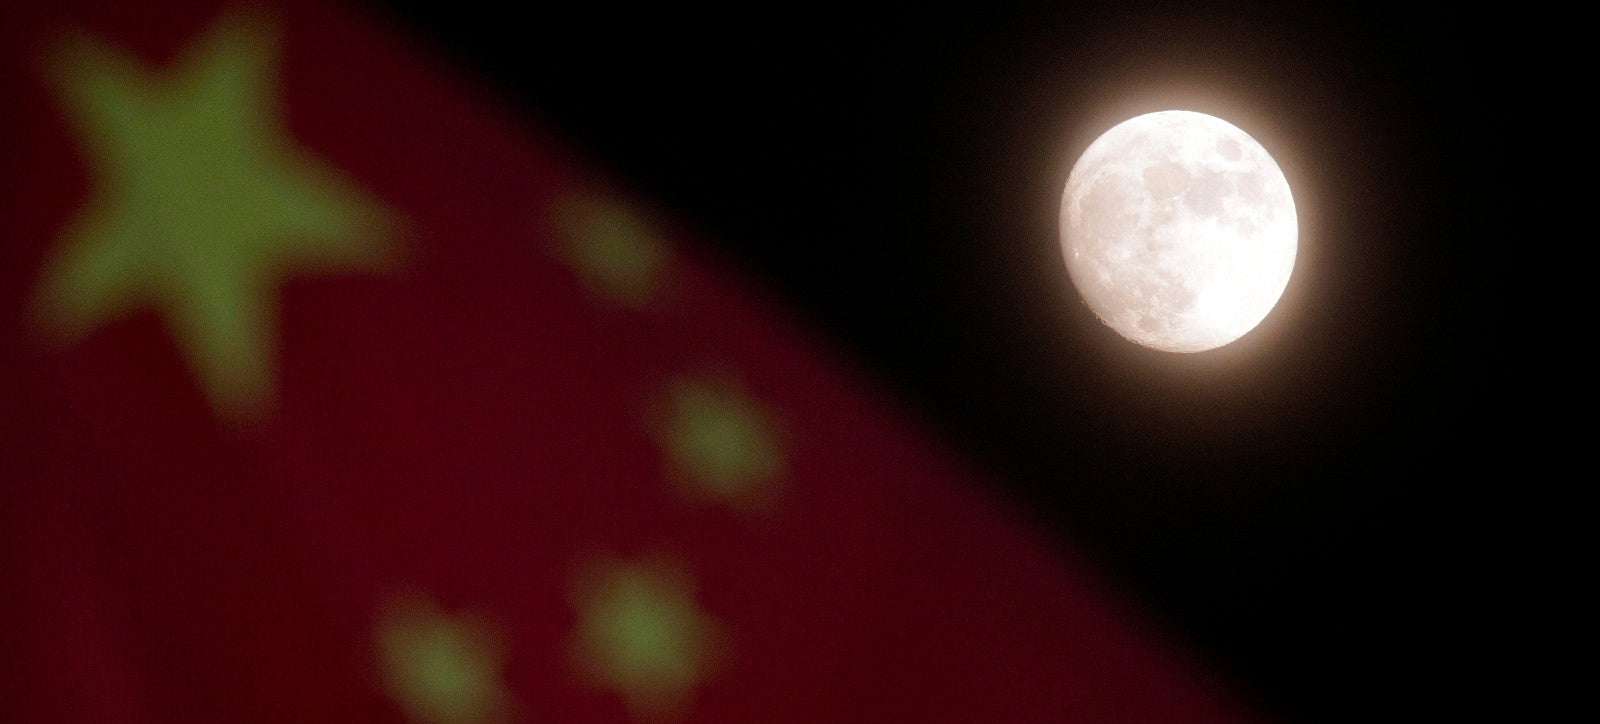 China Announces Plan to Make First Landing on Dark Side of Moon in 2018